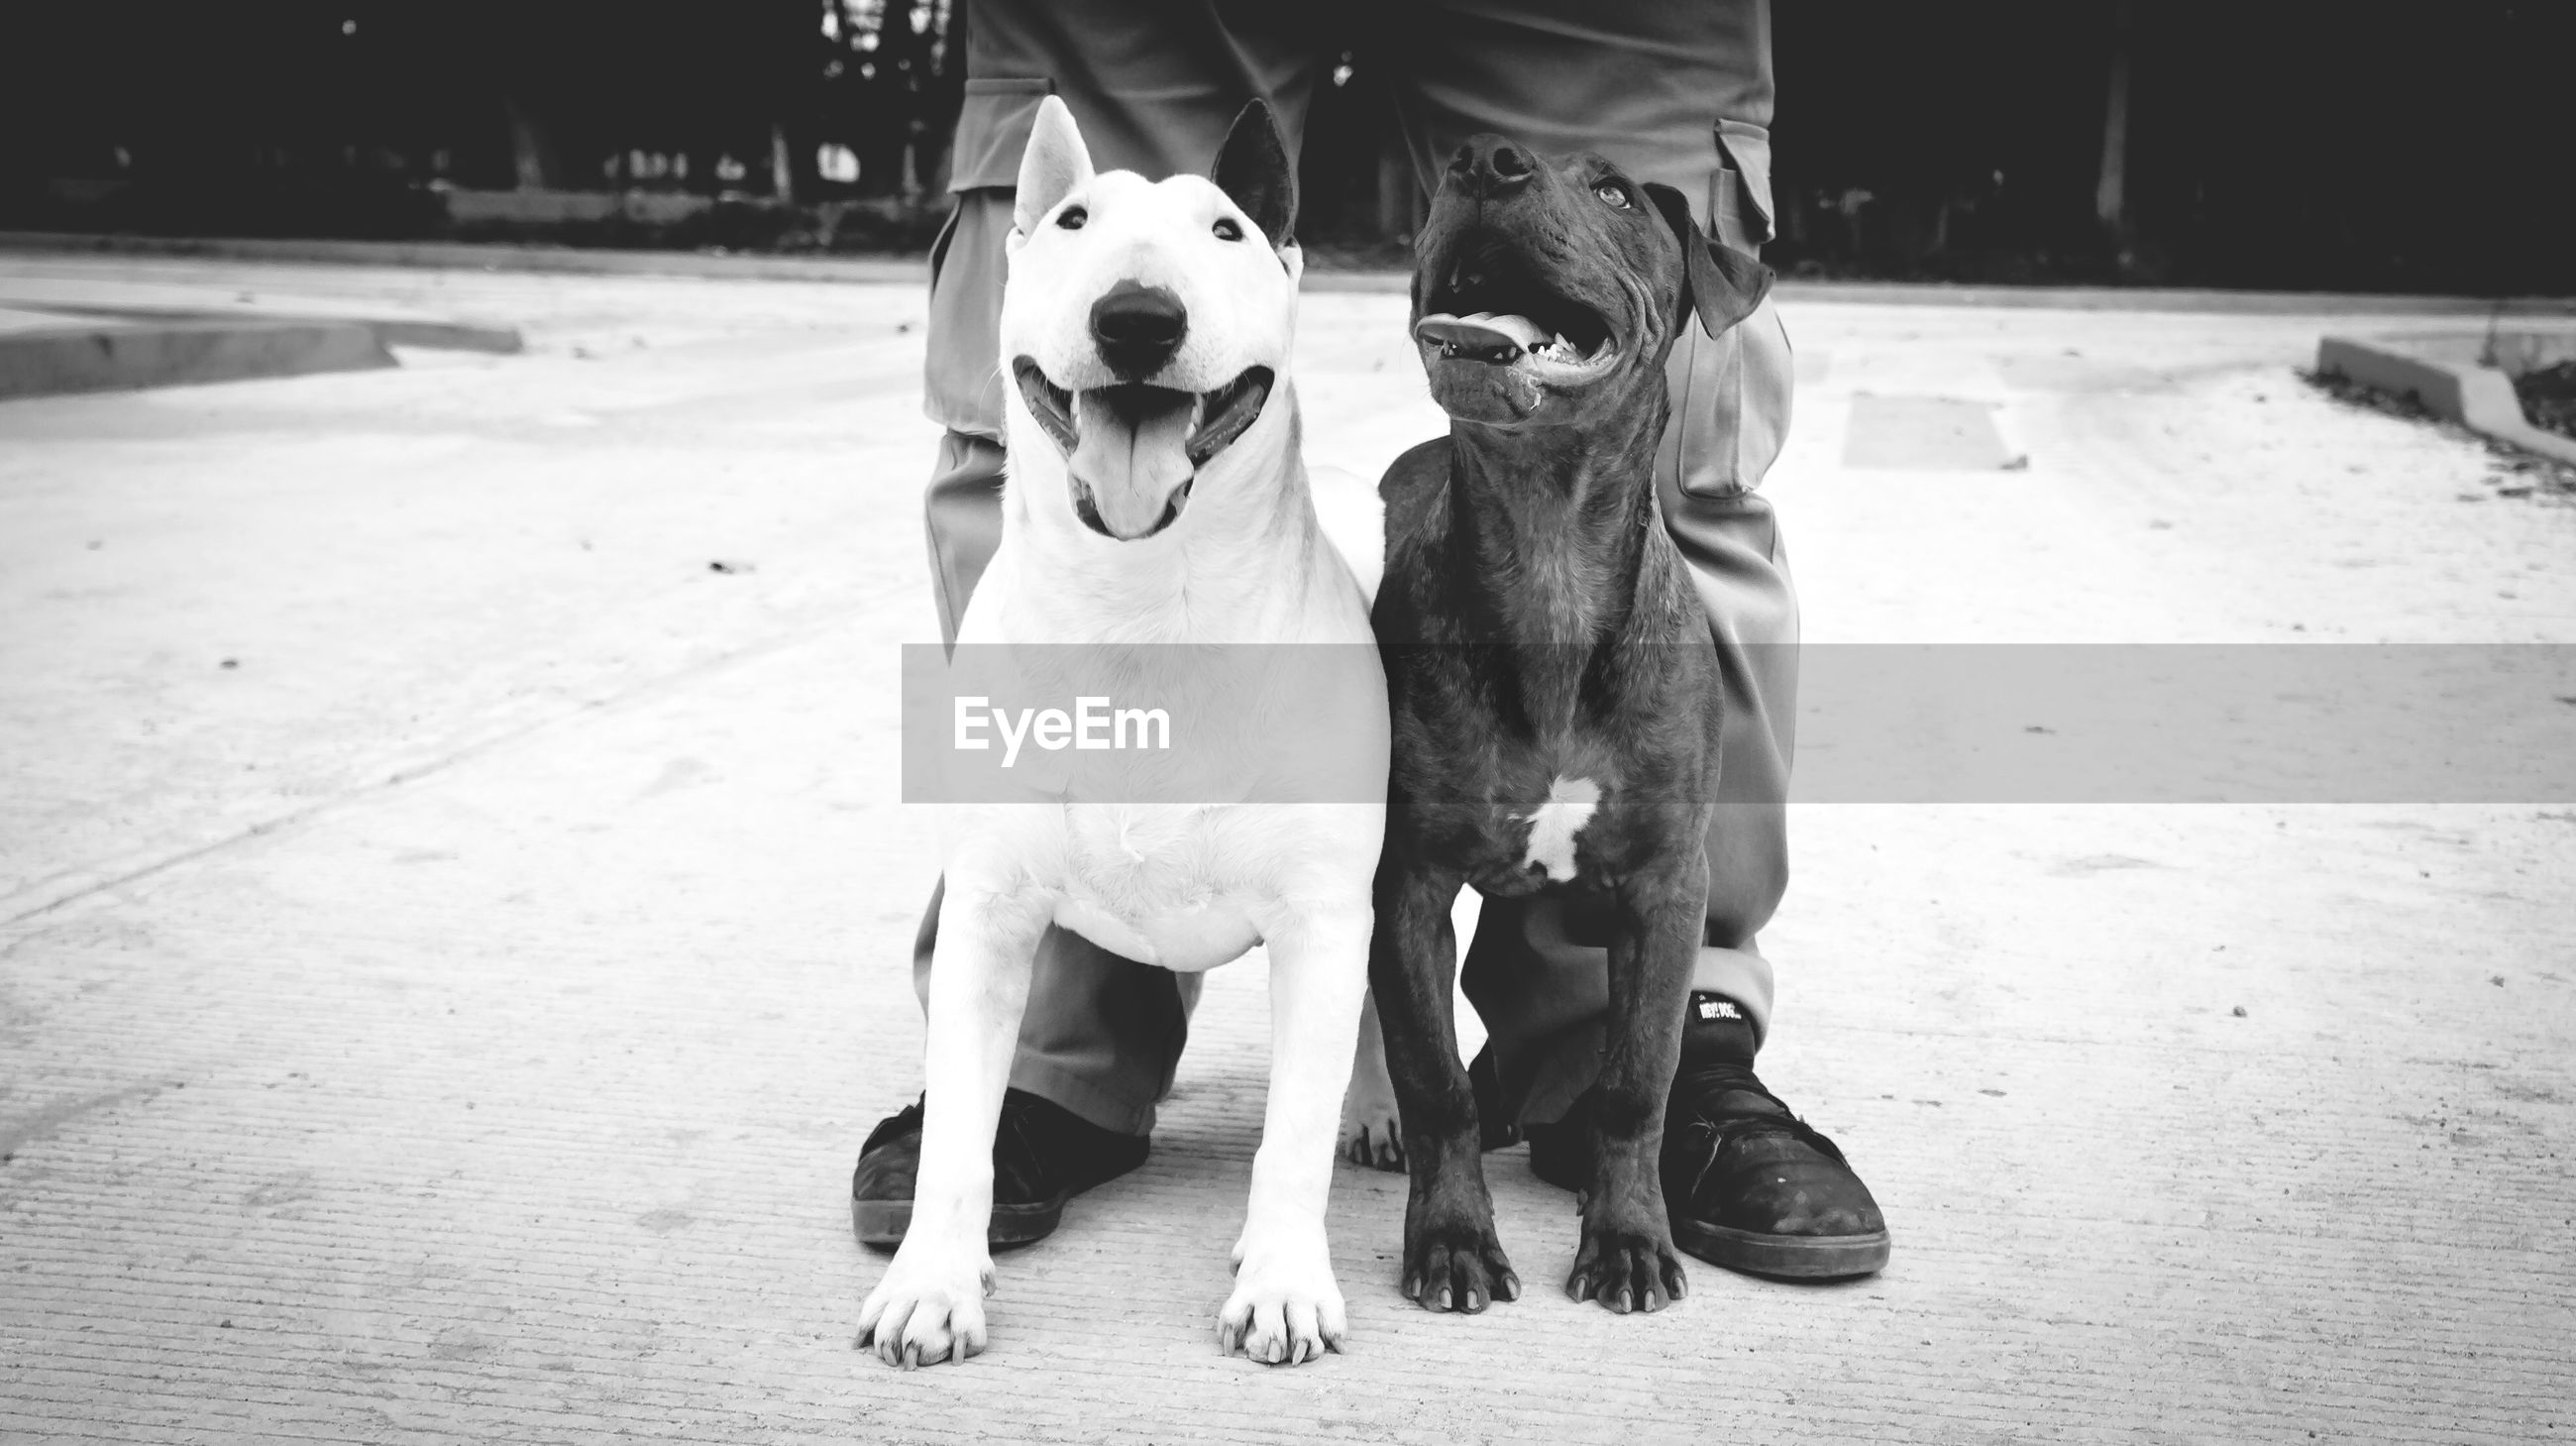 animal themes, domestic animals, standing, horse, mammal, one animal, front view, full length, lifestyles, dog, men, portrait, looking at camera, casual clothing, outdoors, livestock, street, leisure activity